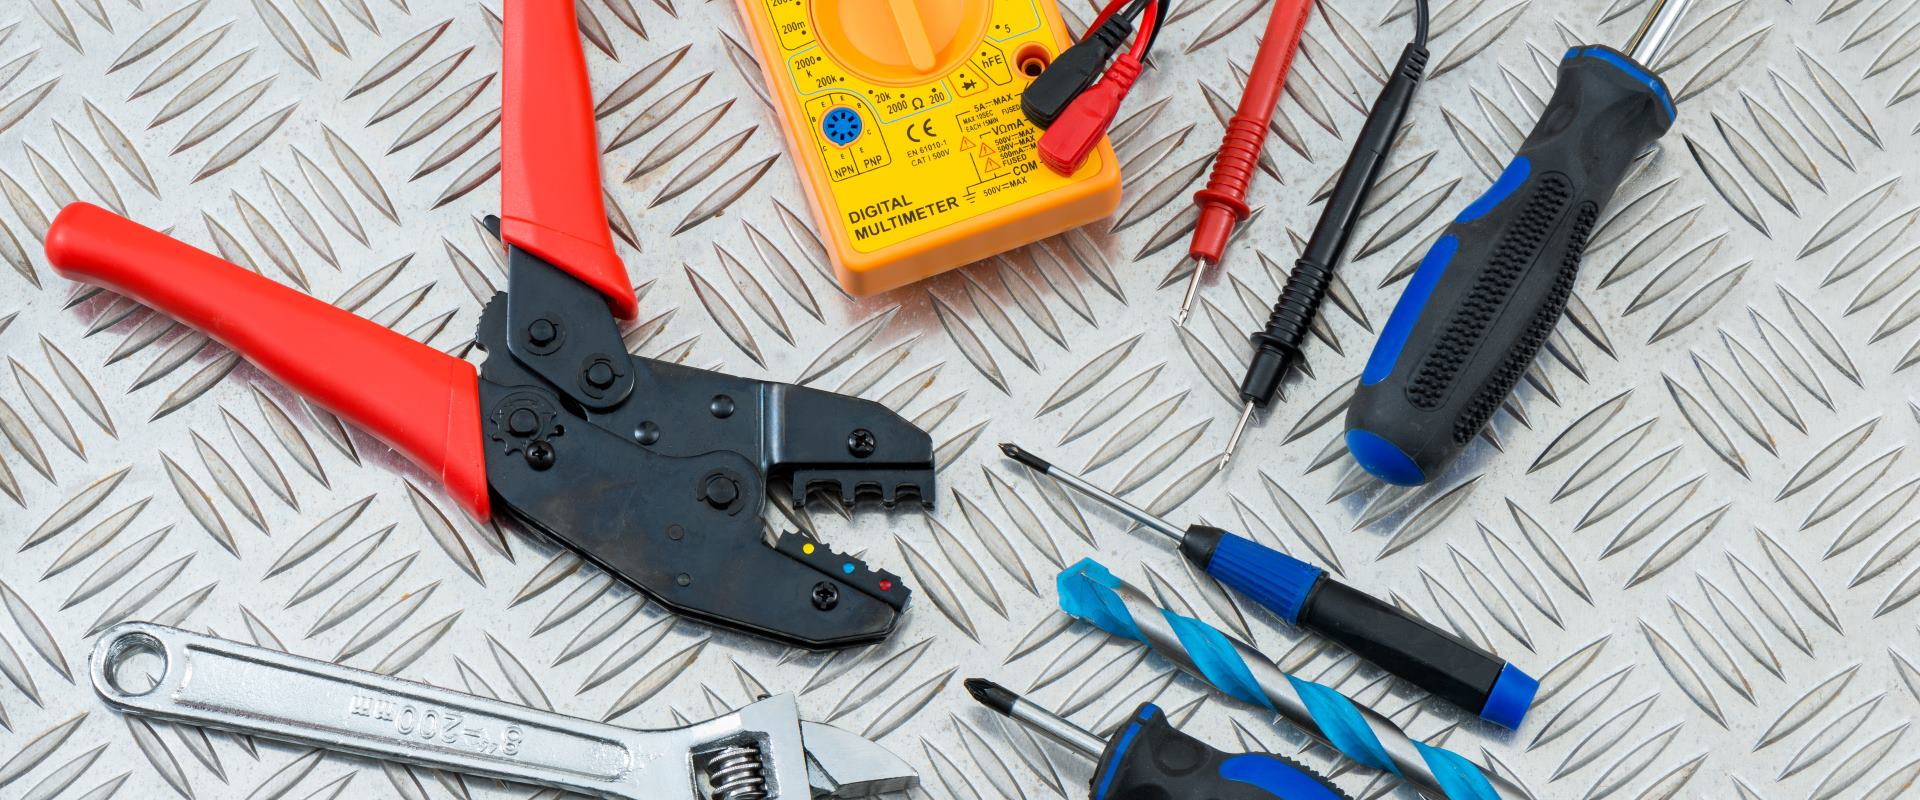 Electrical repair and maintenance tools